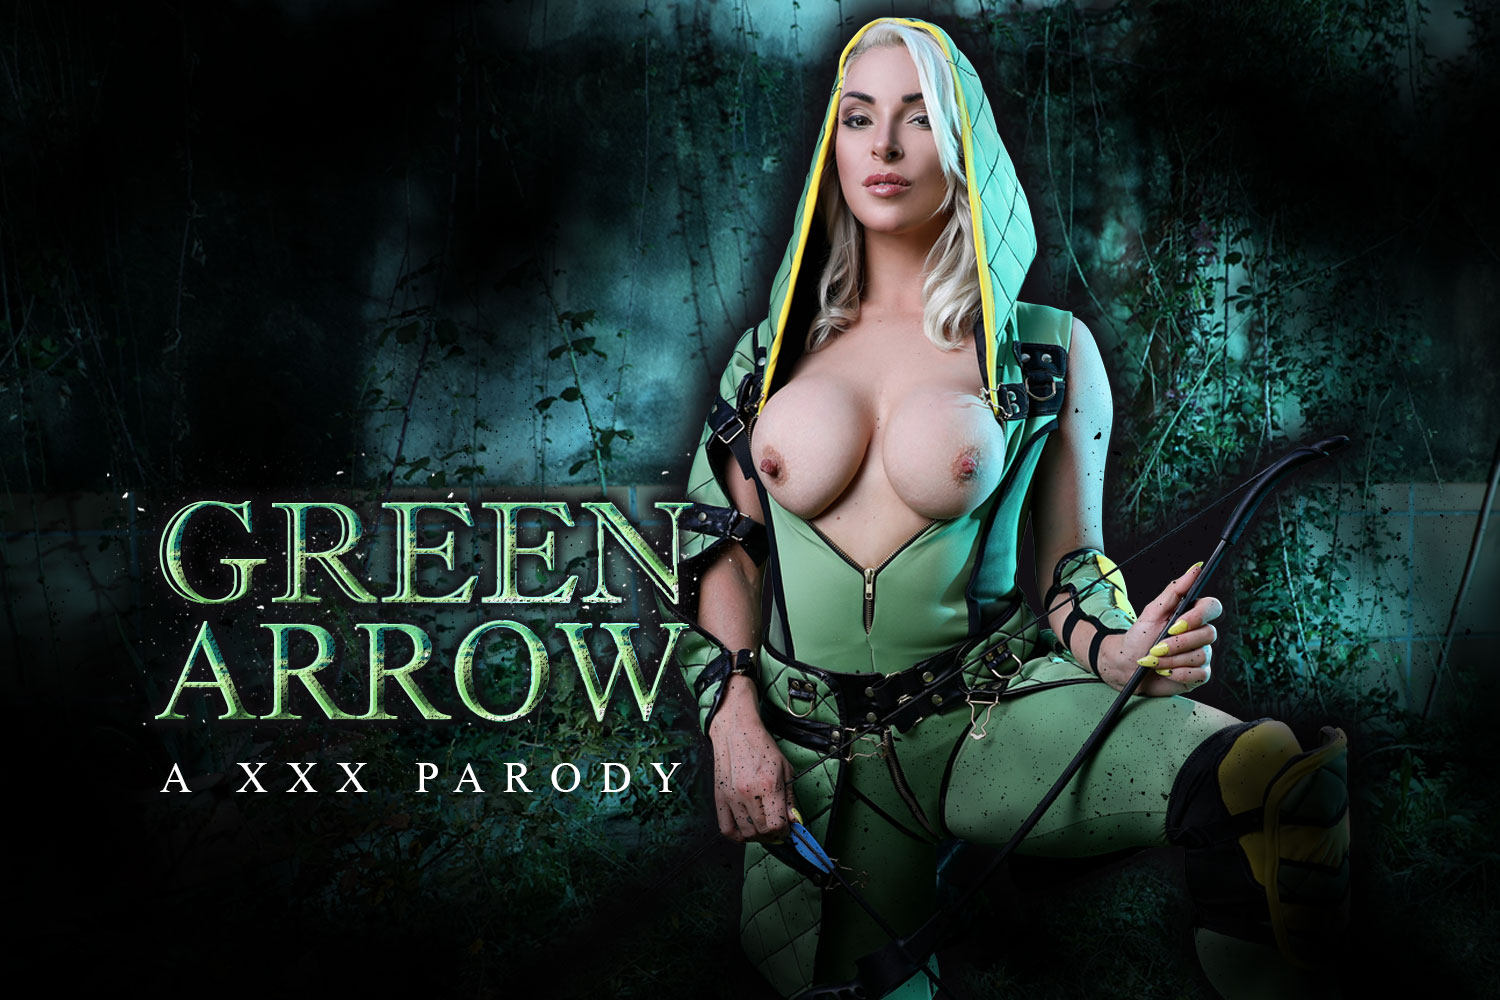 Green Arrow A XXX Parody Victoria Summers